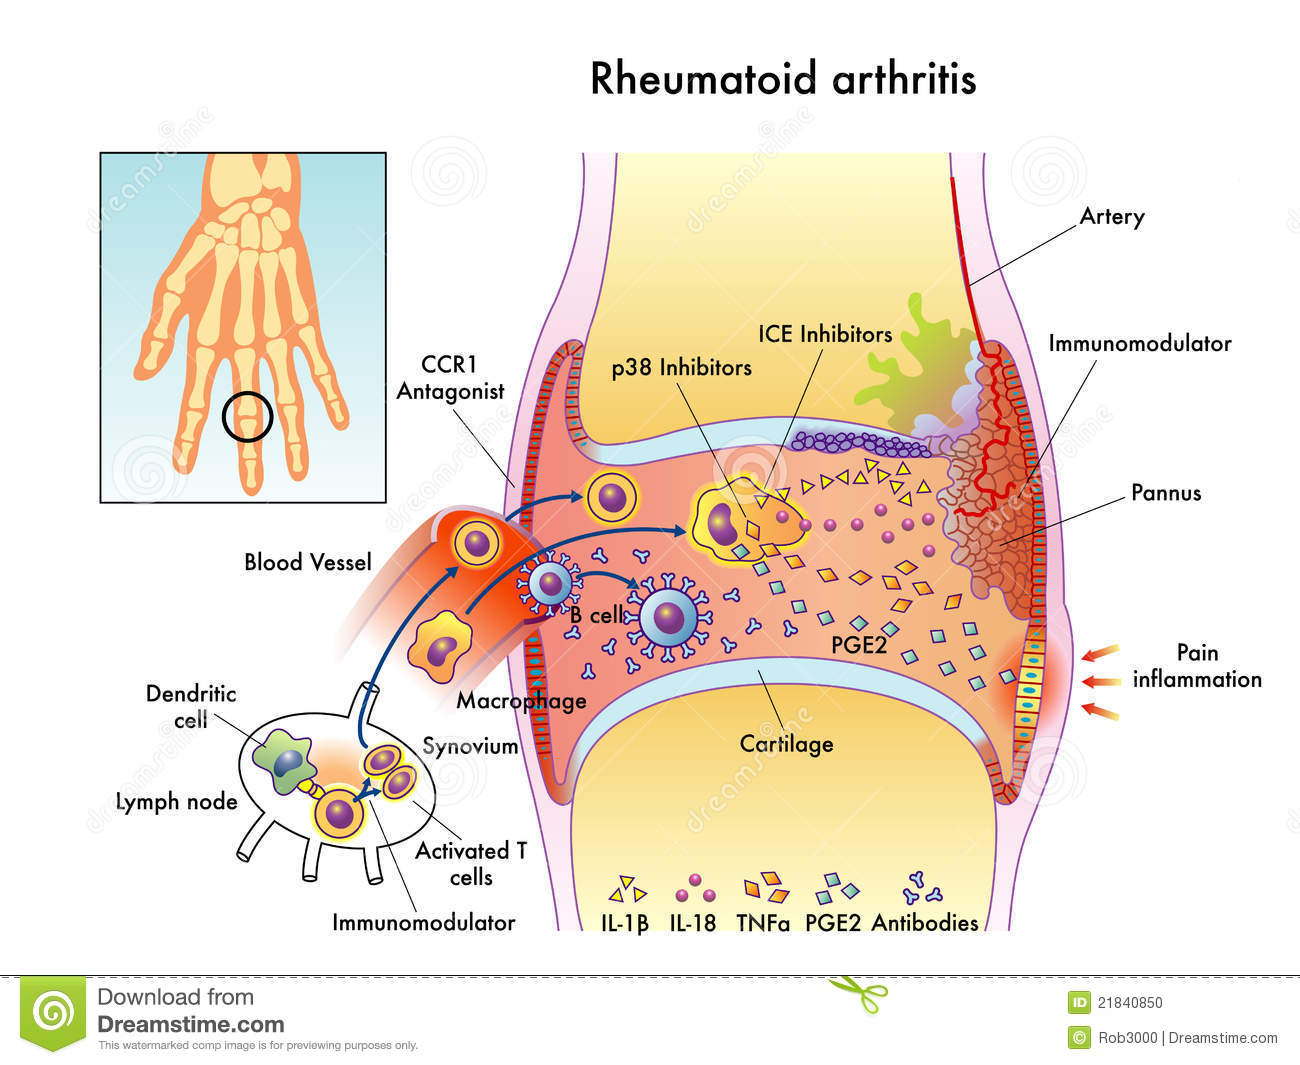 Medical illustration of the effects of the Rheumatoid Arthritis.